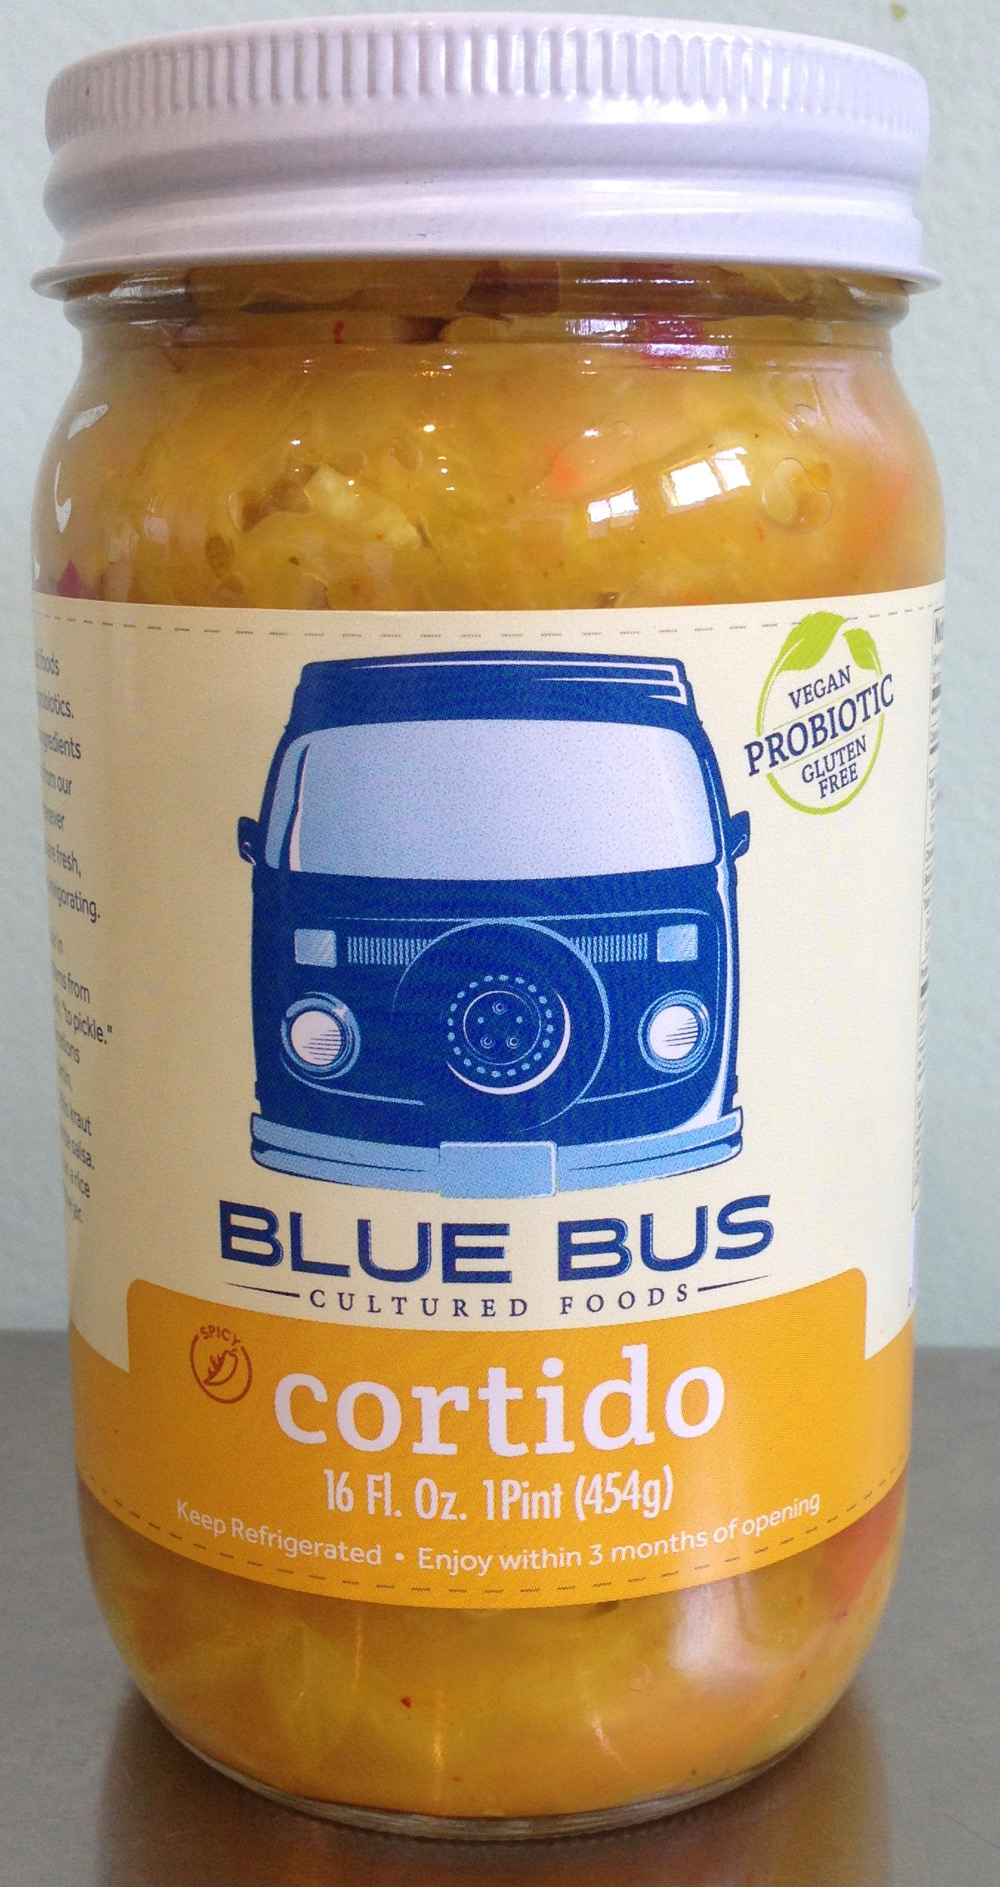 Courtesy of Blue Bus Cultured Foods